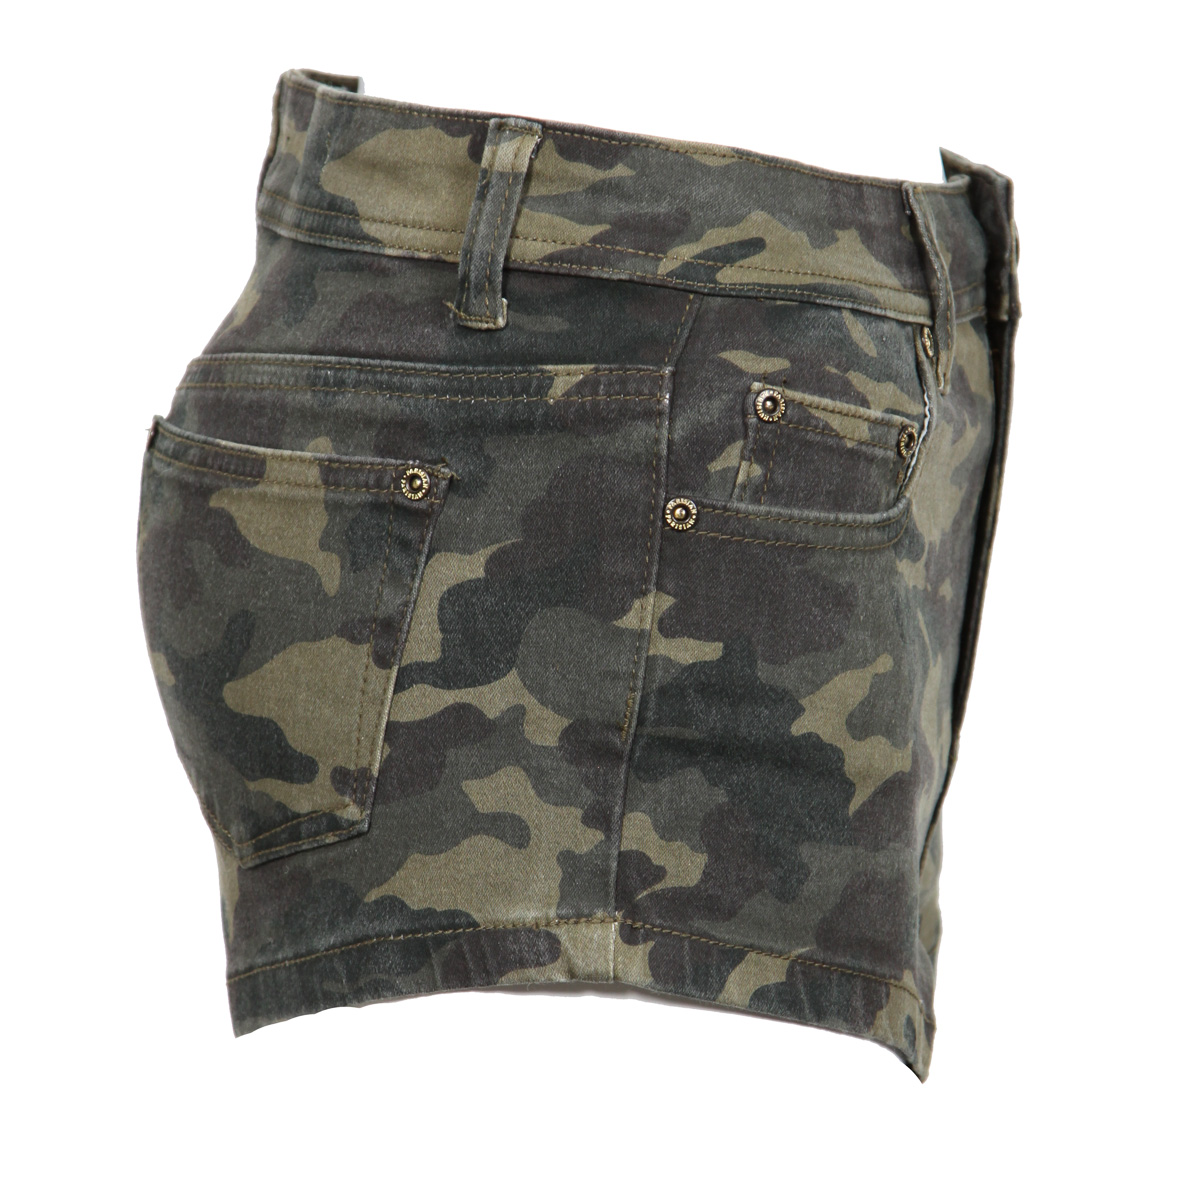 The Propper tactical pants provides a better alternative of excellent quality mens and womens trousers compared to Blackhawk tactical pants, woolrich tactical pants, tactical operator trousers, sigtac pant.